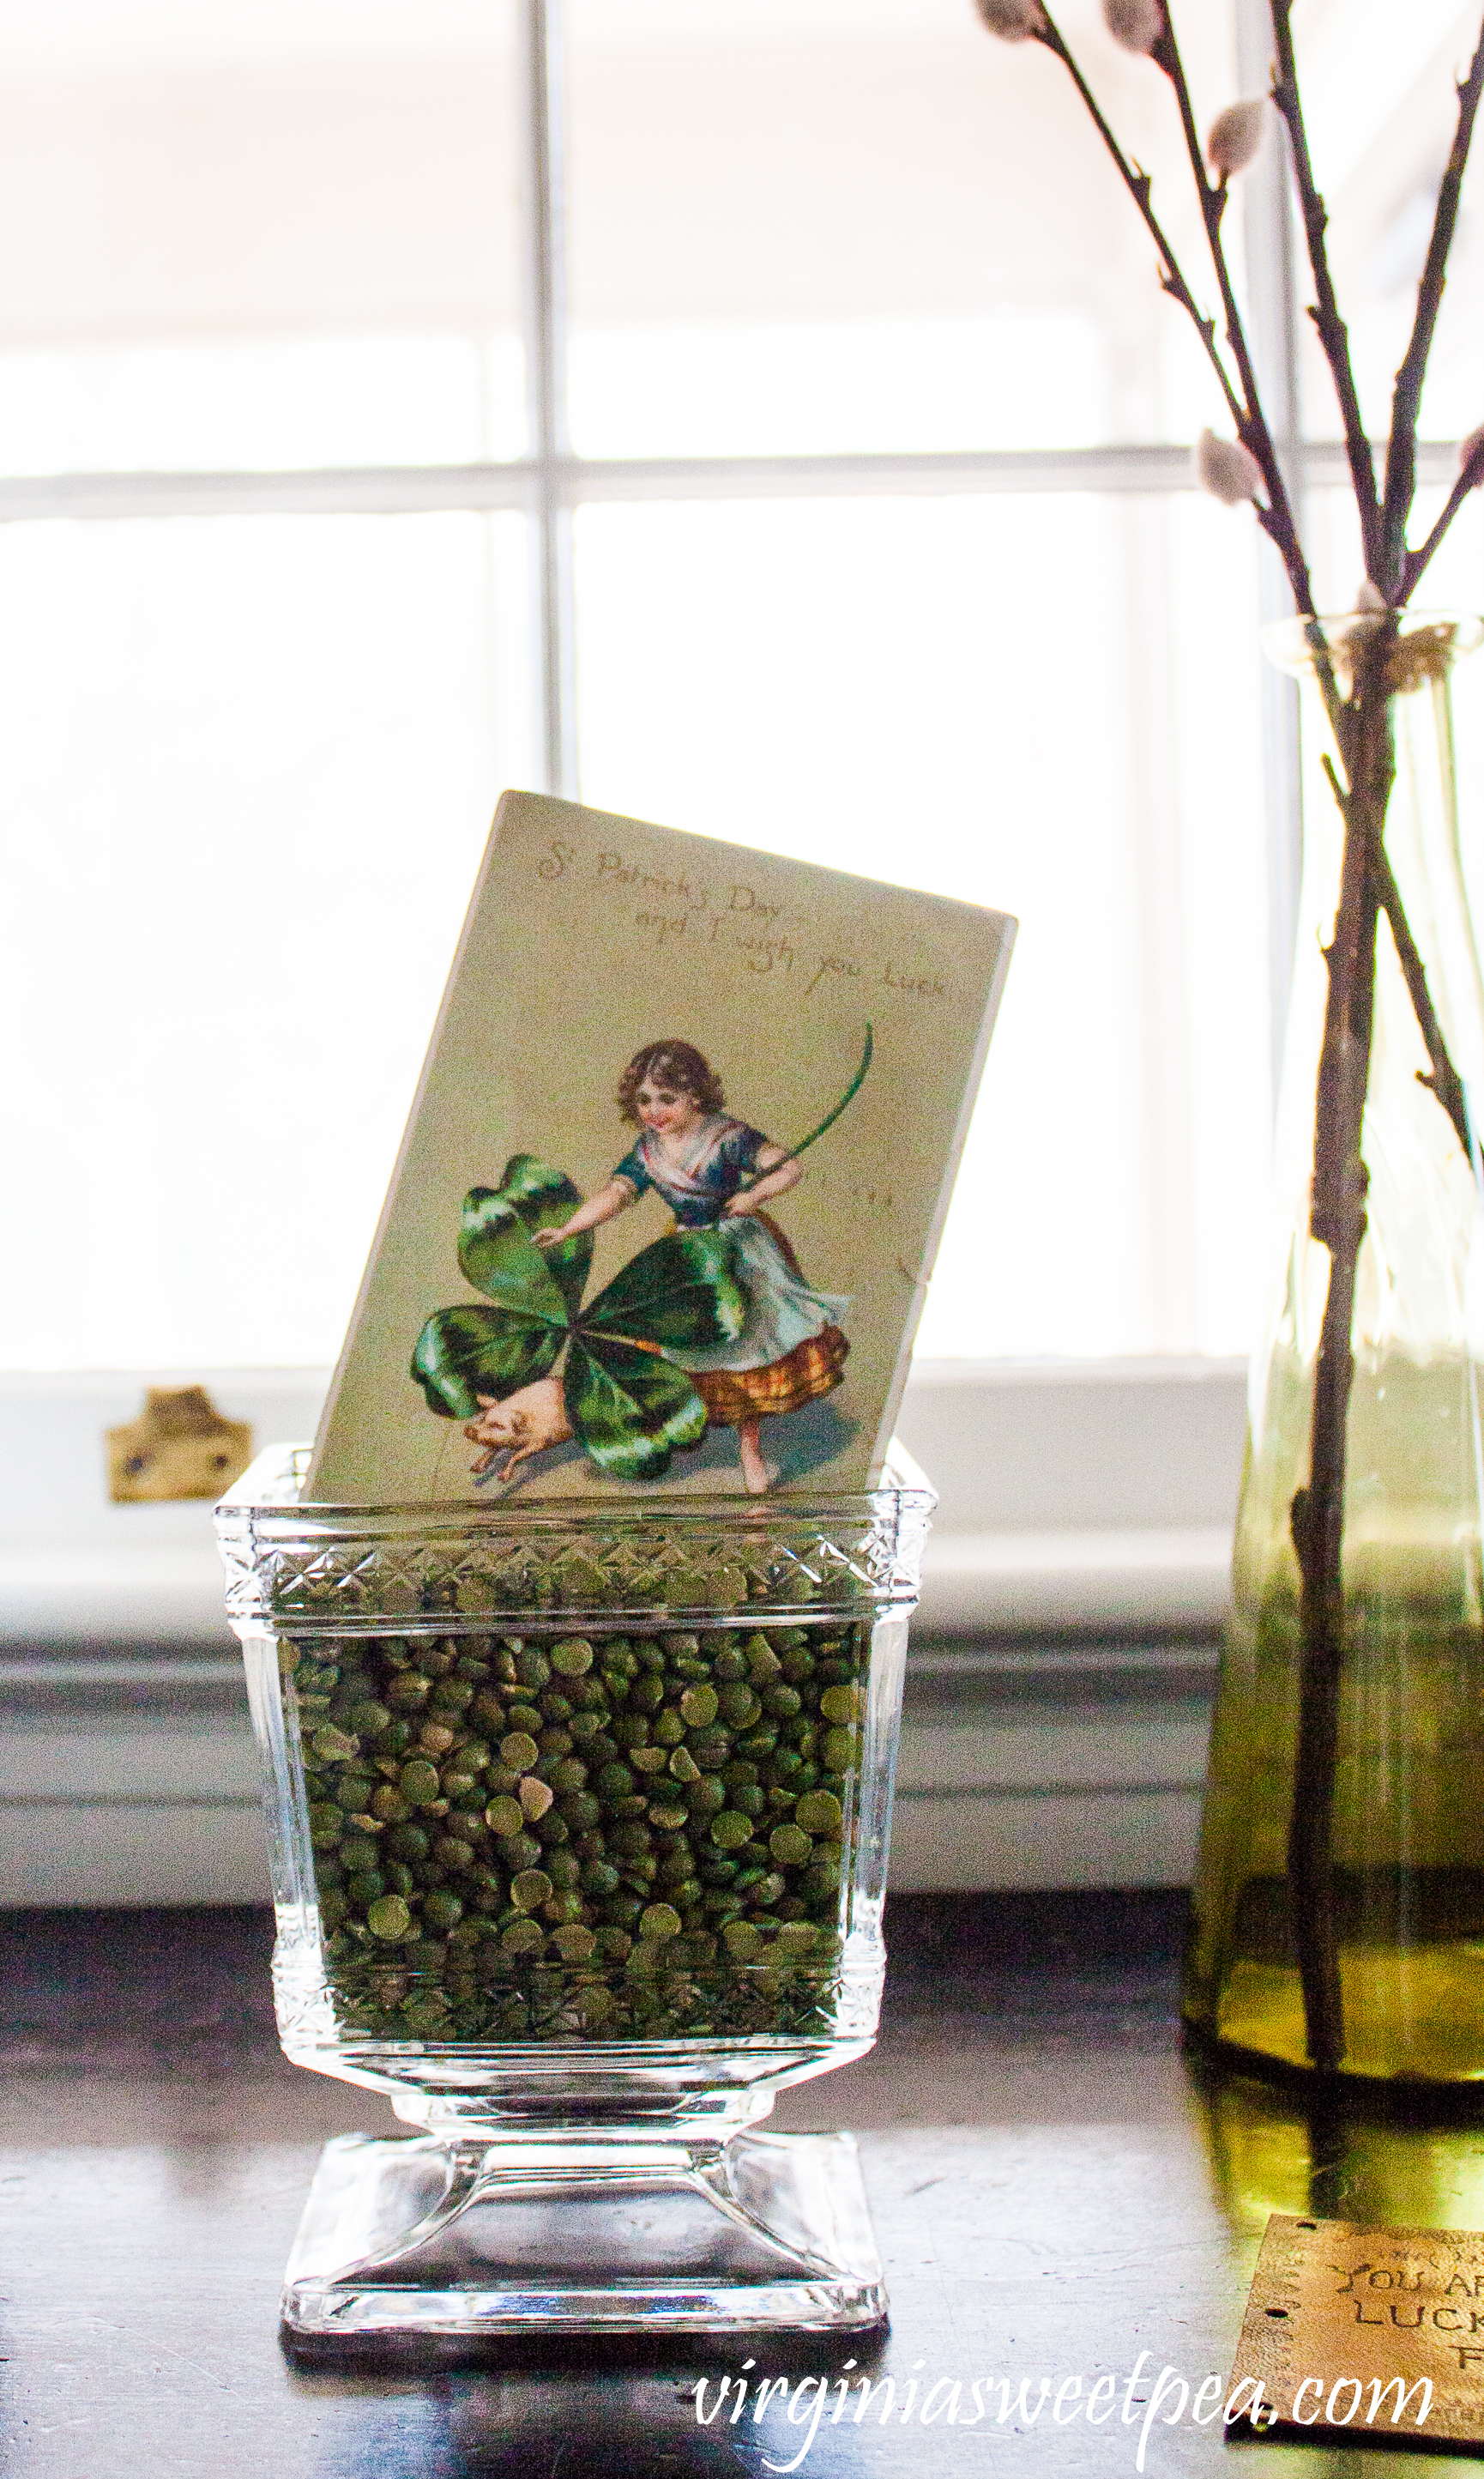 1908 St. Patrick's Day postcard displayed in an antique glass compote filled with split peas. #antiquepostcard #antiquestpatricksdaypostcard #vintagedecor